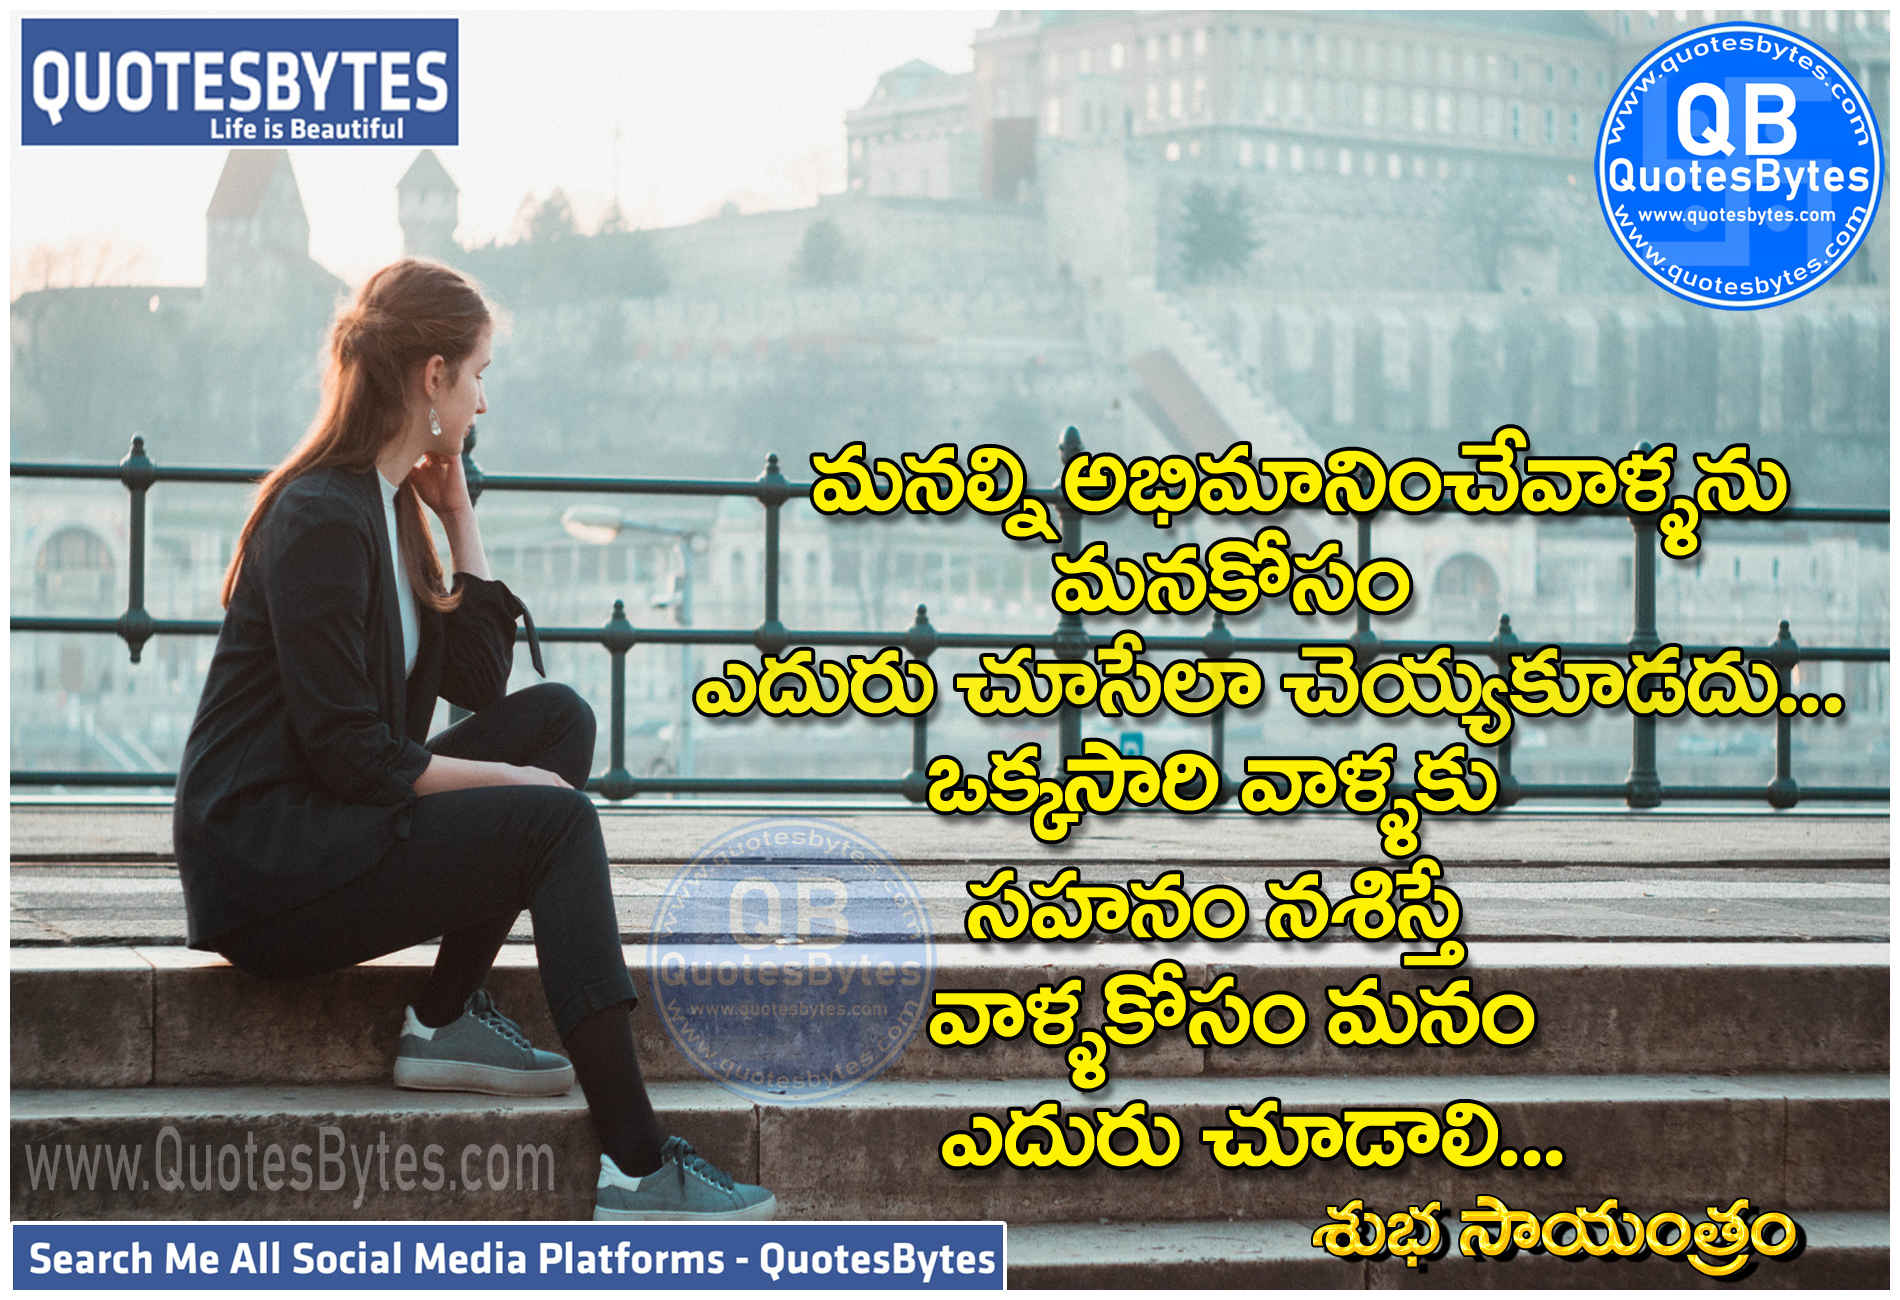 best Telugu Evening quotes,Good Evening Quotes Good Evening Wallpapers, QuotesBytes providing Here is telugu Quotes,good Evening quotes telugu text,telugu good Evening kavithalu,2021 Evening quotes in telugu,inspirational good Evening quotes in telugu, Telugu-Quotes ,good Evening quotes telugu for friends,good Evening in telugu language,good Evening quotes telugu love,telugu good Evening sms 140,good Evening quotes telugu text,telugu good Evening kavithalu, Best inspirational Quotes about victory and Life in telugu ,2021 Evening quotes in telugu,good Evening quotes, telugu for friends,good Evening in telugu language,good Evening quotes telugu love,telugu good Evening quotes download, Best Victory Quotes ,telugu good Evening quotes,good Evening quotes telugu love download,inspirational good Evening quotes in telugu,good Evening quotes telugu love,good Evening quotes telugu video download,funny good Evening quotes in telugu,good Evening quotes in telugu for lovers, Best inspirational Victory Quotes ,good Evening images with quotes for whatsapp in telugu, telugu good Evening quotes,best telugu good Evening quotes, Telugu-Good-Evening-Quotes ,telugu love good Evening quotes,telugu inspirational good Evening quotes,telugu beautiful good Evening quotes,telugu god good Evening quotes, Best telugu inspirational quotes about life , Best good evening Quotes for friends , Good evening thoughts and quotes in telugu ,telugu funny good Evening quotes, telugu Good evening Quotes with Hd wallpapers, Best telugu quotes about life and victory, telugu bible good Evening quotes, Sunrise Quotes InTelugu, Inspirational Subhodayam, Good Evening Quotes, Good Evening Wallpapers, HD Telugu Good Evening Quotes, Best Telugu Good Evening Images With Telugu Quotes, Telugu Good Evening quotes with images, Motivational Subhodayam, life good Evening quotes in telugu motivational thoughts messages, Nice Telugu Subhodayam Quotes With Images, trending inspiration good Evening quotes in telugu and engl